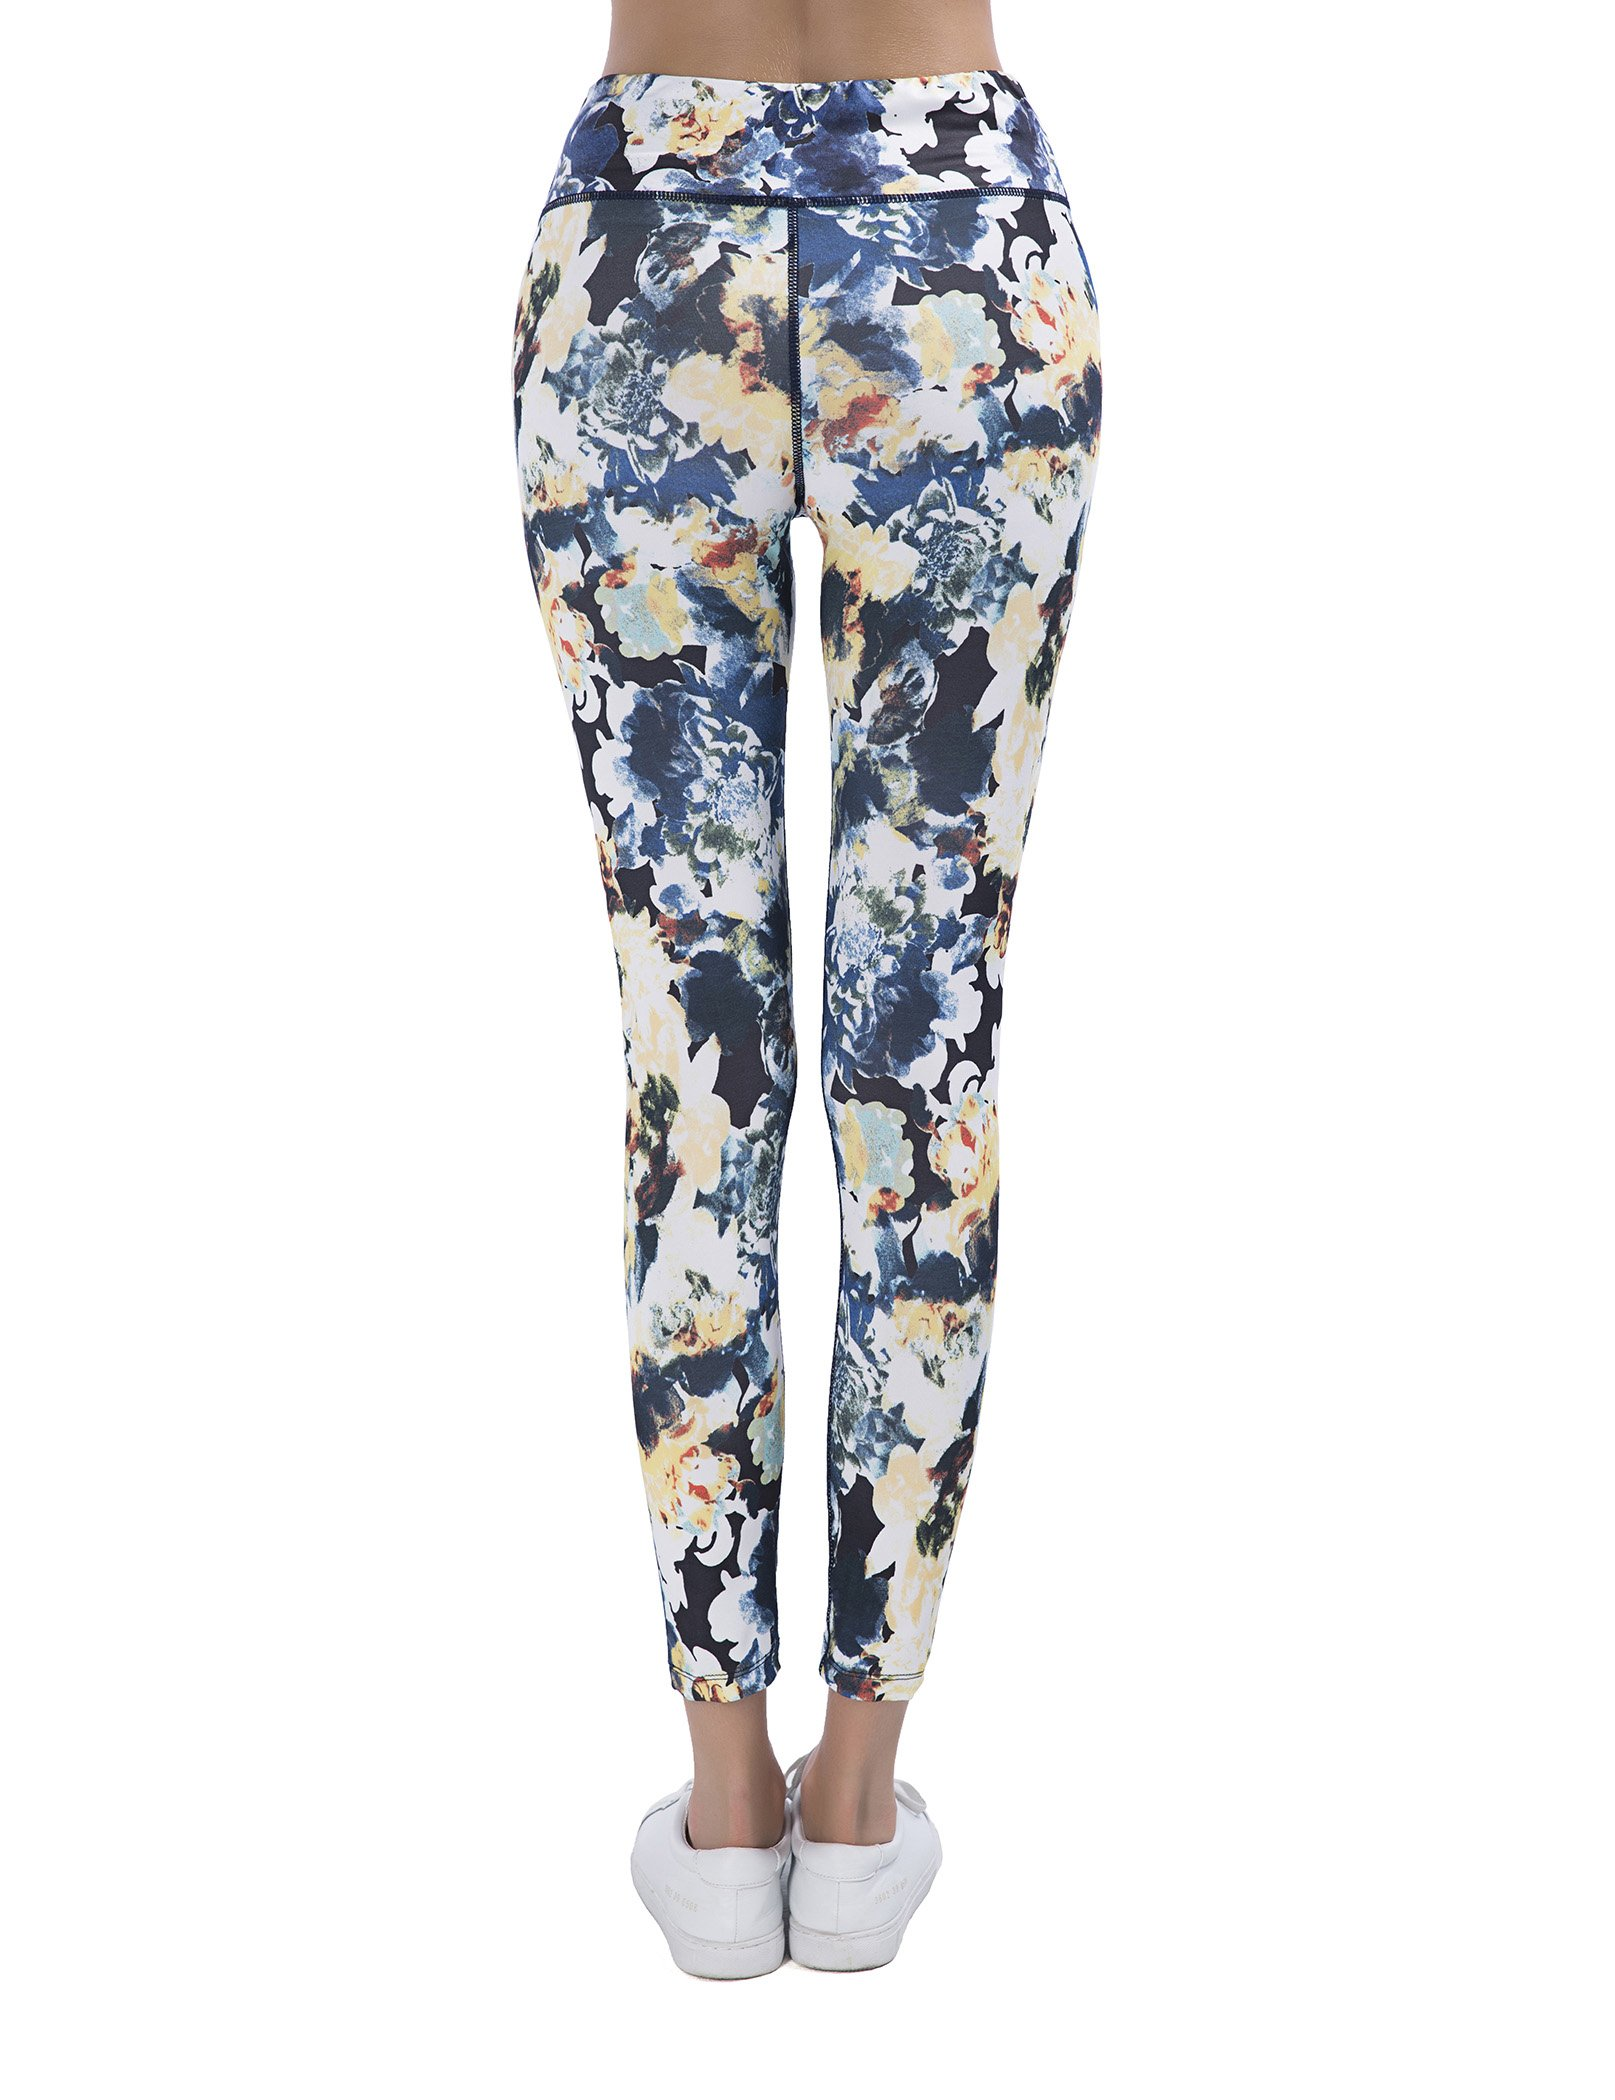 SPECIAL MAGIC Women\'s High Waisted Floral Print Long Legging Navy Blue L